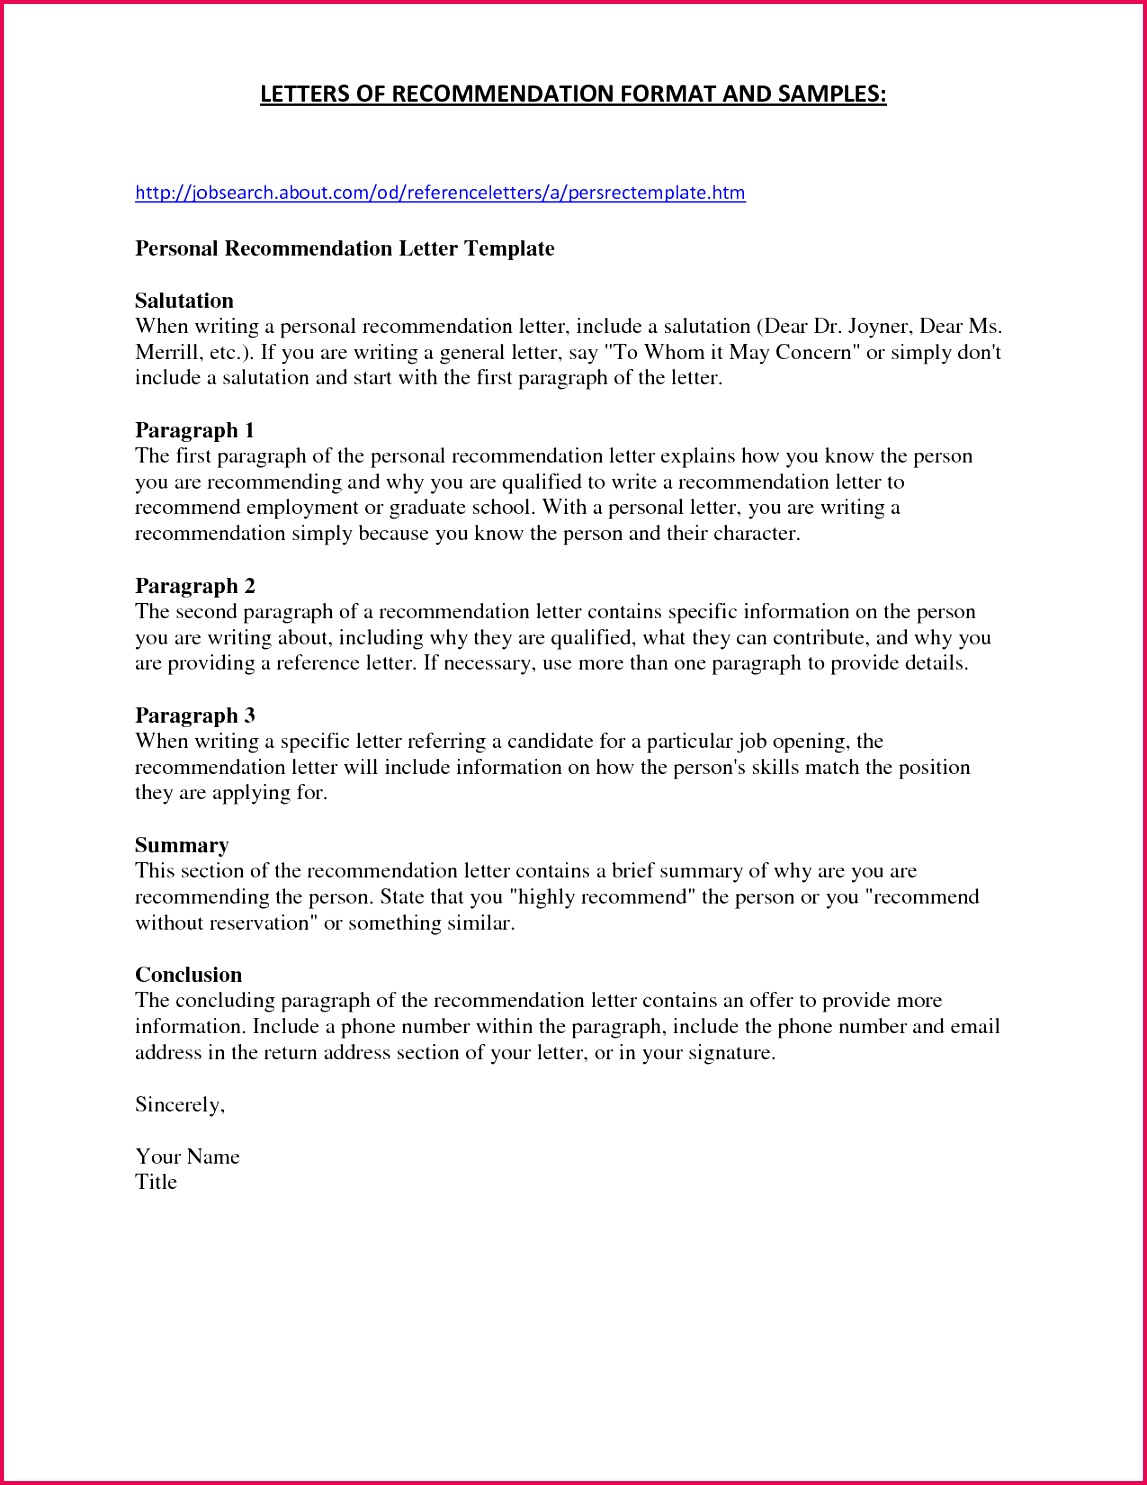 National Junior Honor society Letter Re mendation Template Letter Re Mendation for Nurse